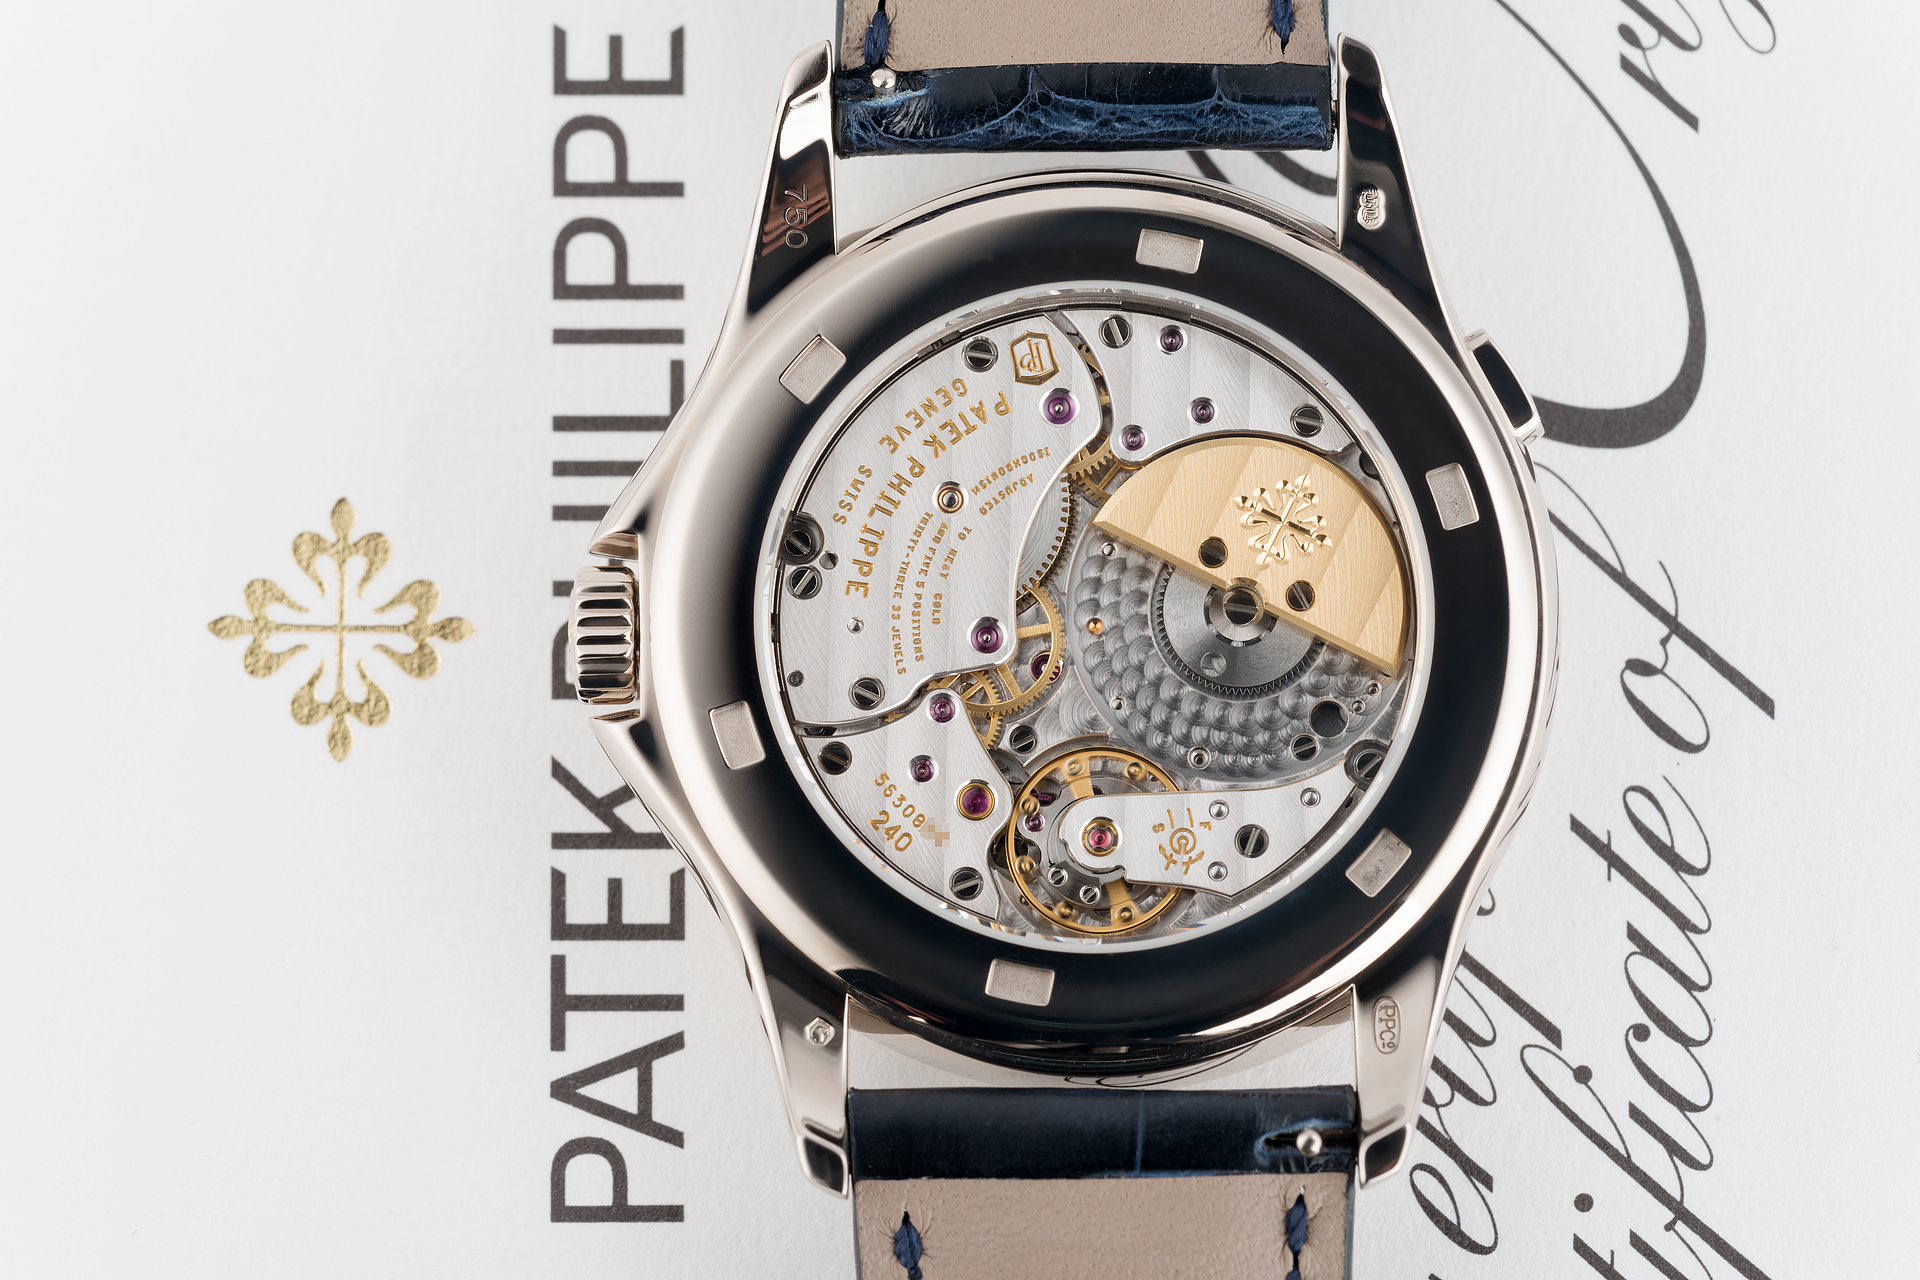 4watch – The Charm of Patek Philippe -Luxury Watches